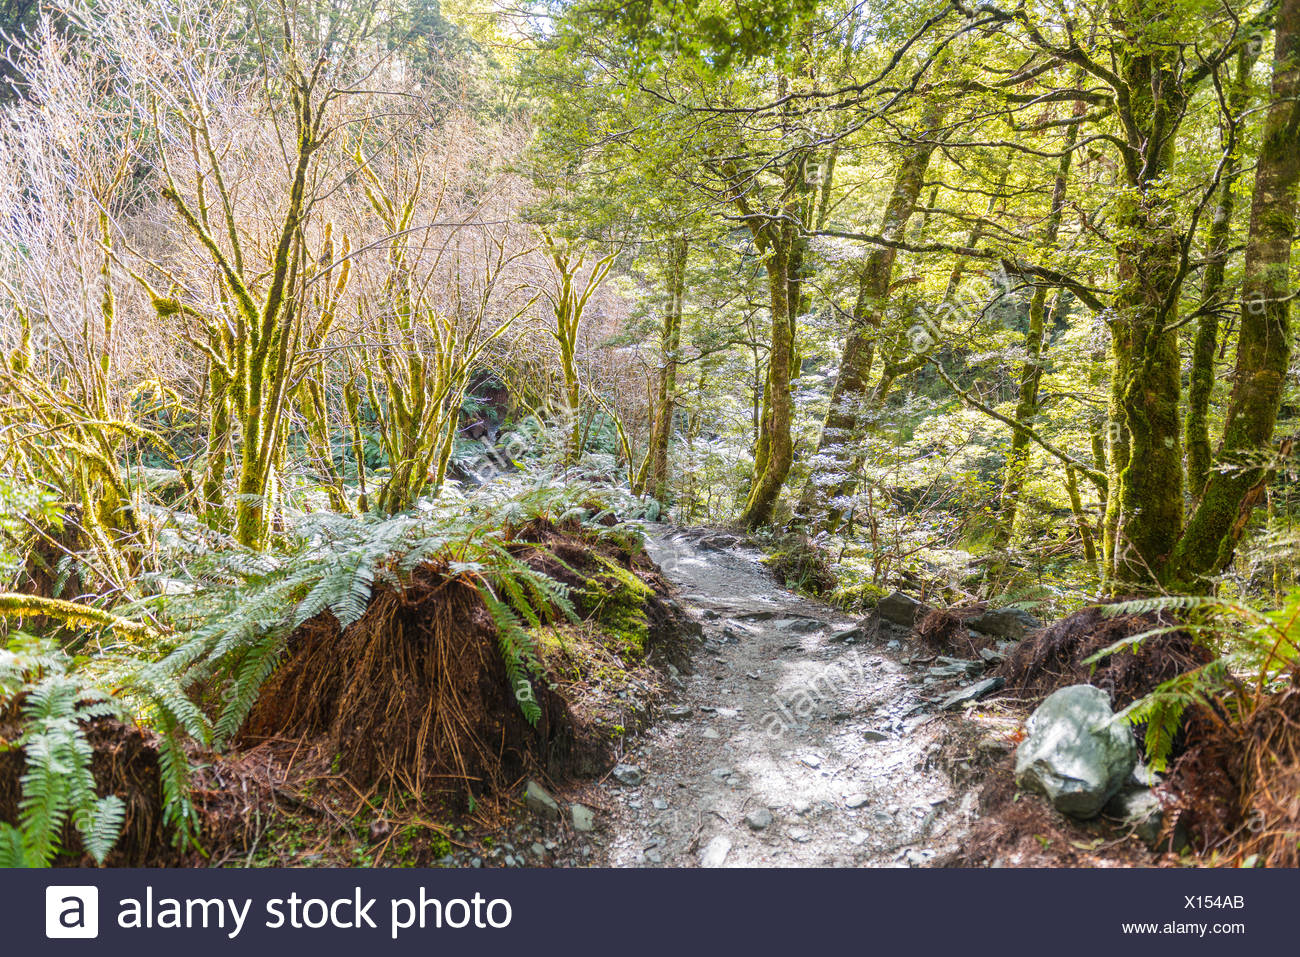 Sentier à travers forêt avec fougère, la végétation alpine, Mount Aspiring National Park, Otago, Nouvelle-Zélande, Southland Photo Stock